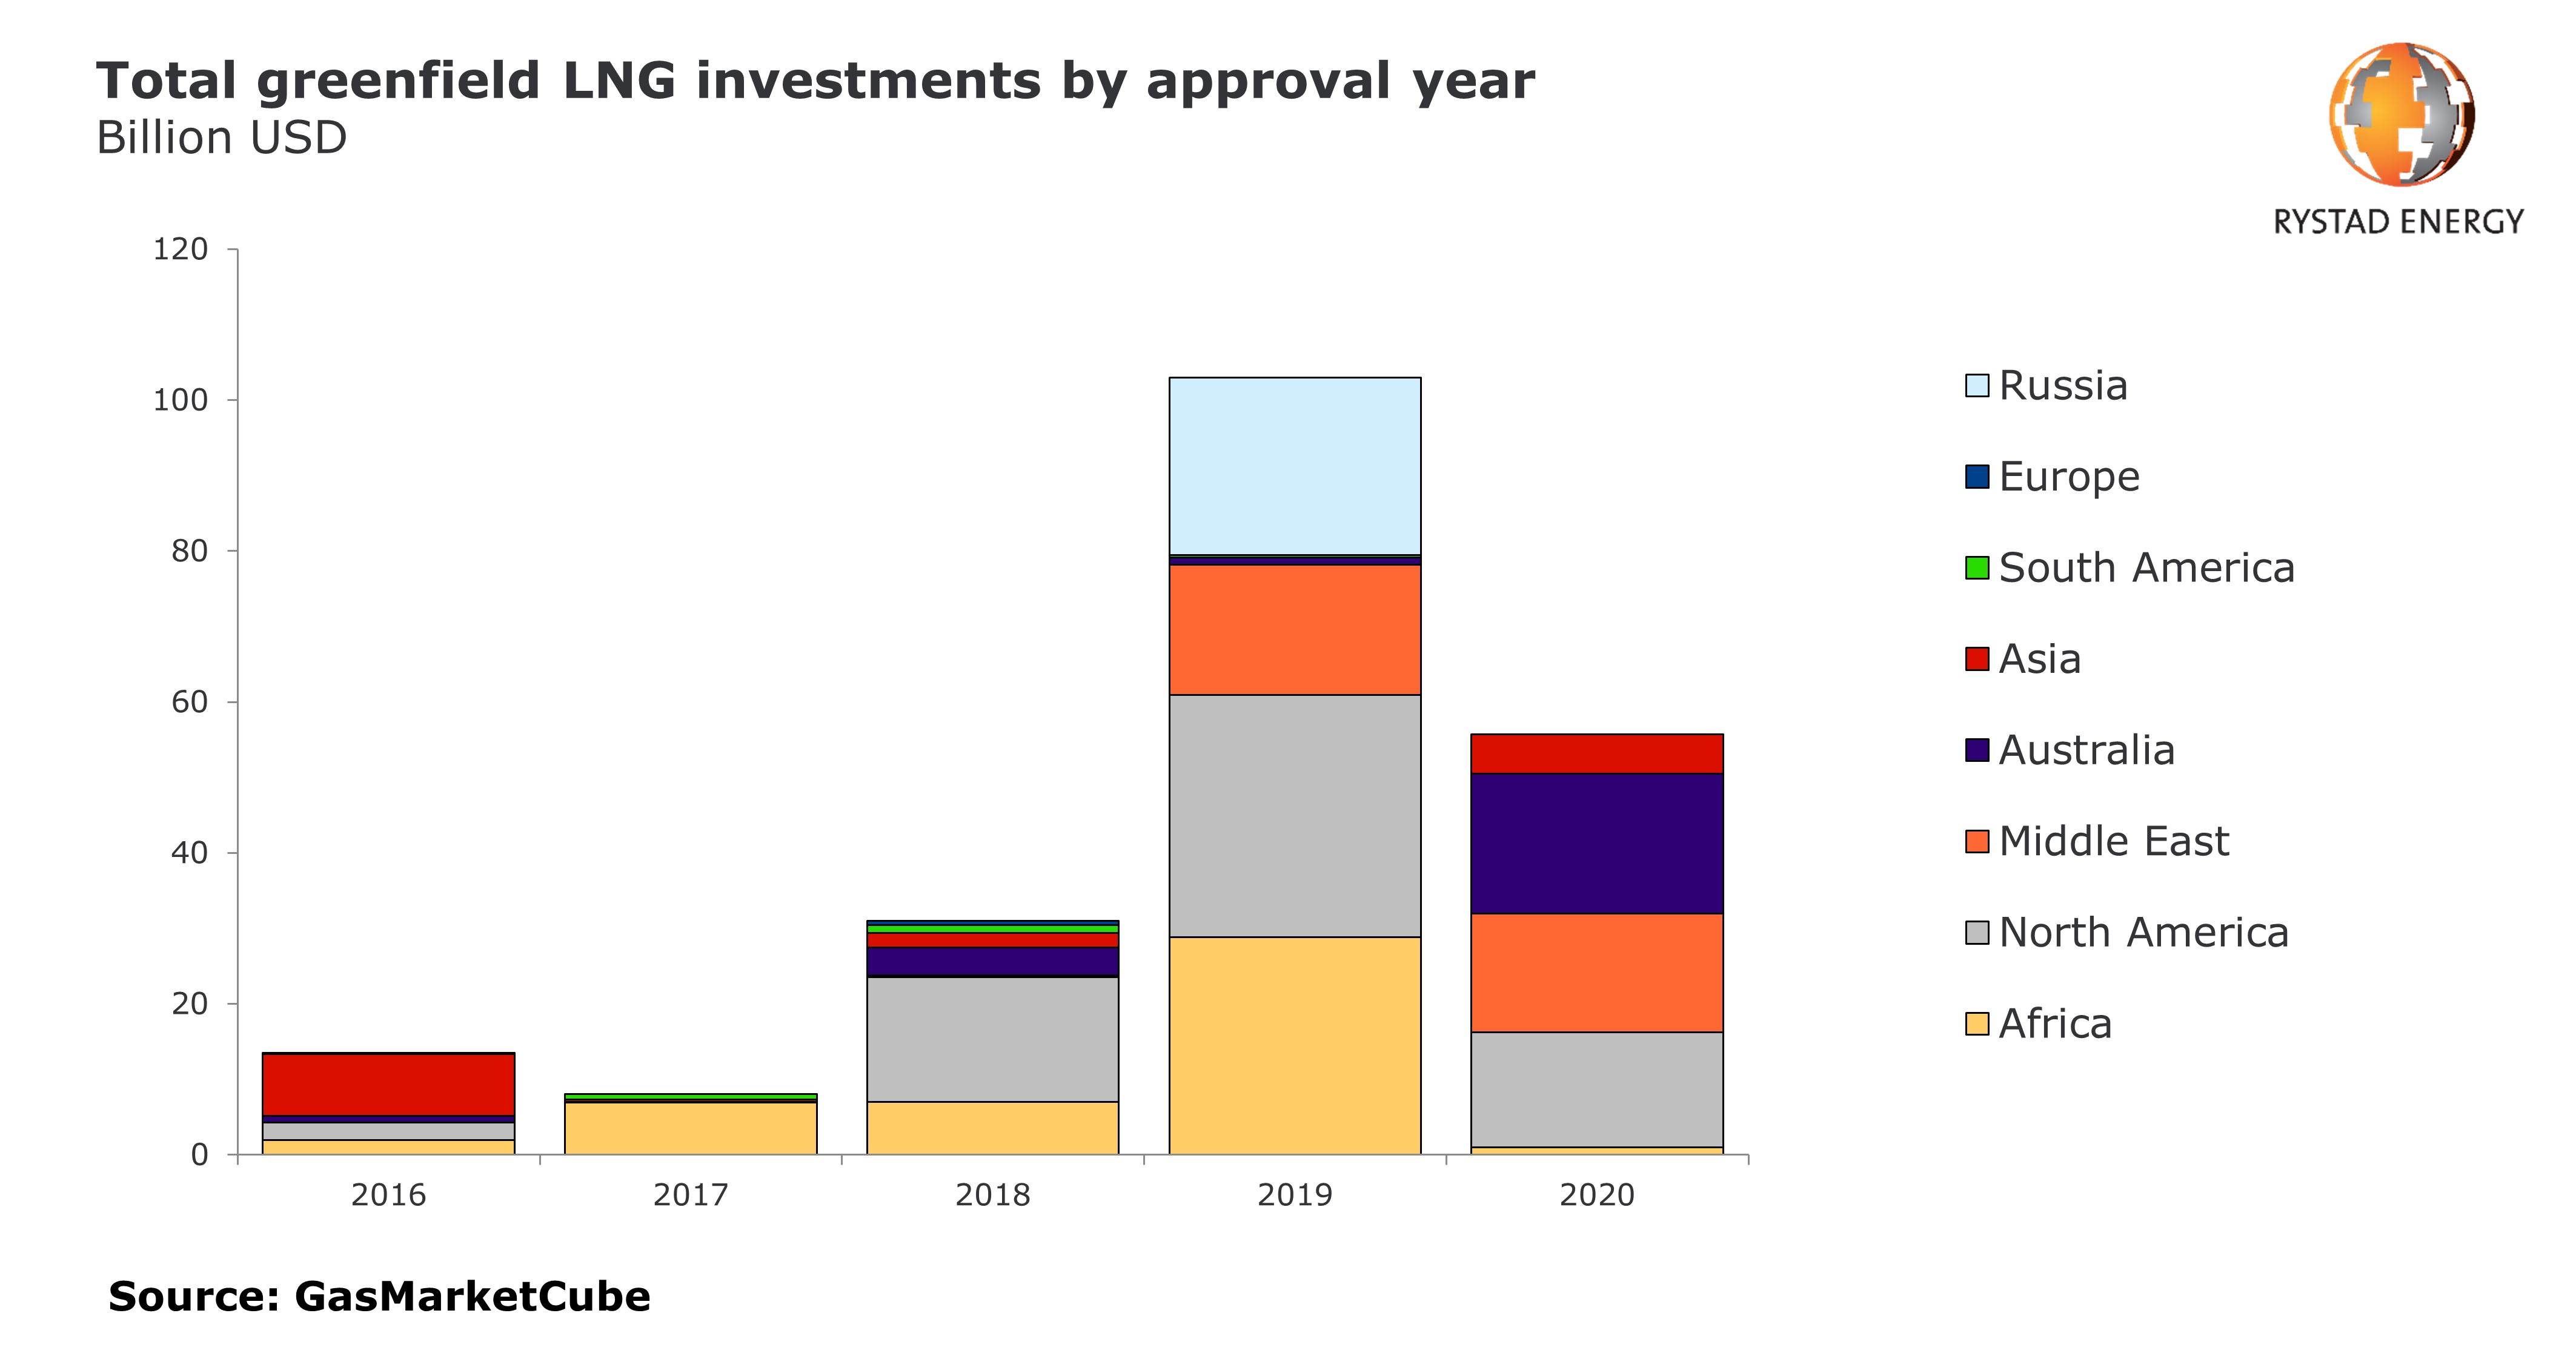 Total greenfield LNG investments by approval year